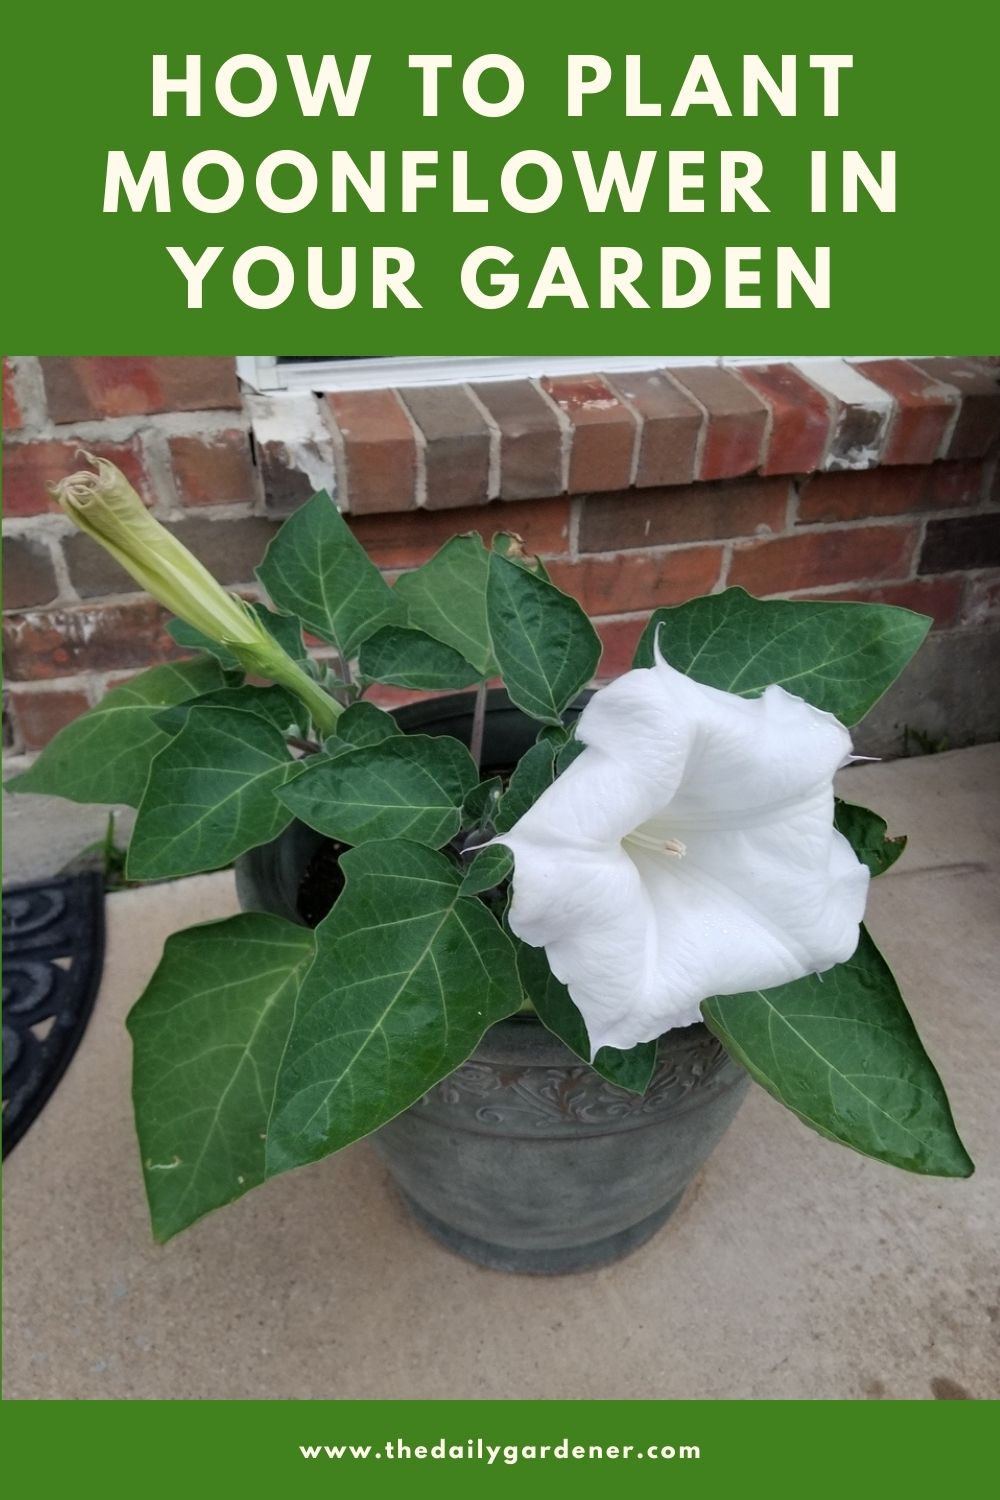 How to Plant Moonflower in Your Garden (Tricks to Care!) 2